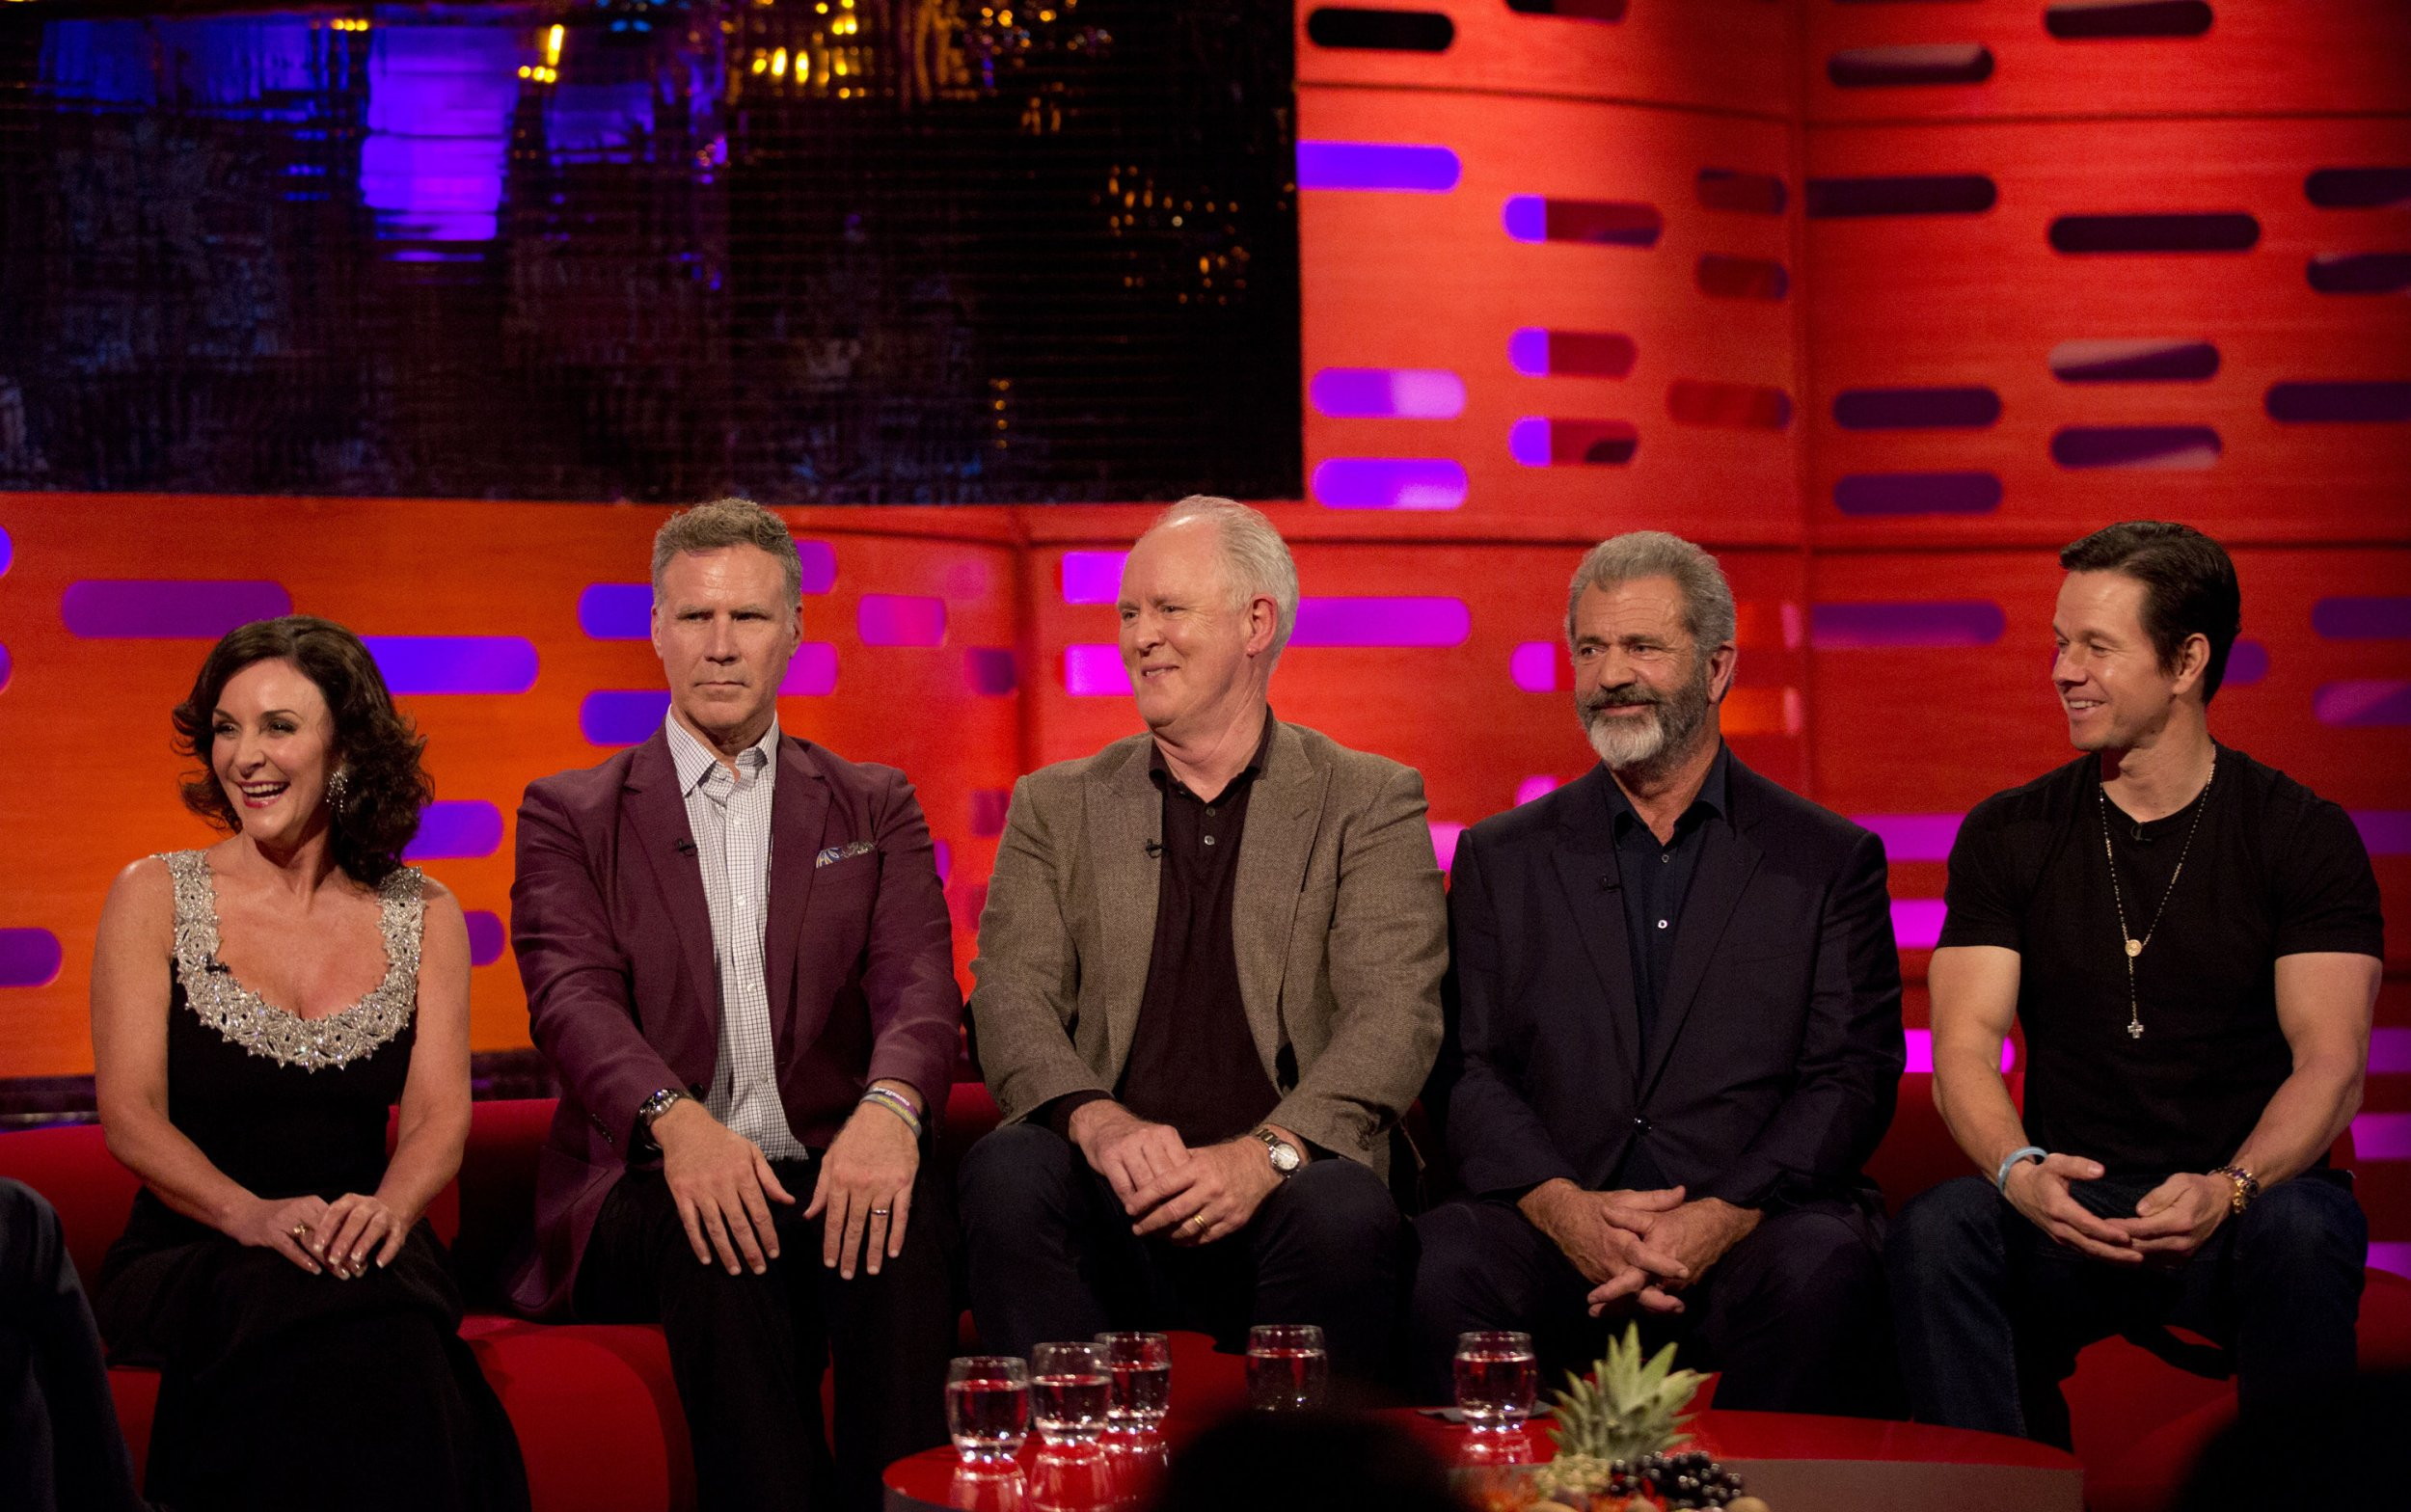 (left to right) Shirley Ballas, Will Ferrell, John Lithgow, Mel Gibson, and Mark Wahlberg, during the filming of the Graham Norton Show at The London Studios, south London, to be aired on BBC One on Friday evening. PRESS ASSOCIATION Photo. Picture date: Thursday November 16, 2017. See PA story SHOWBIZ Norton. Photo credit should read: PA Images on behalf of So TV.